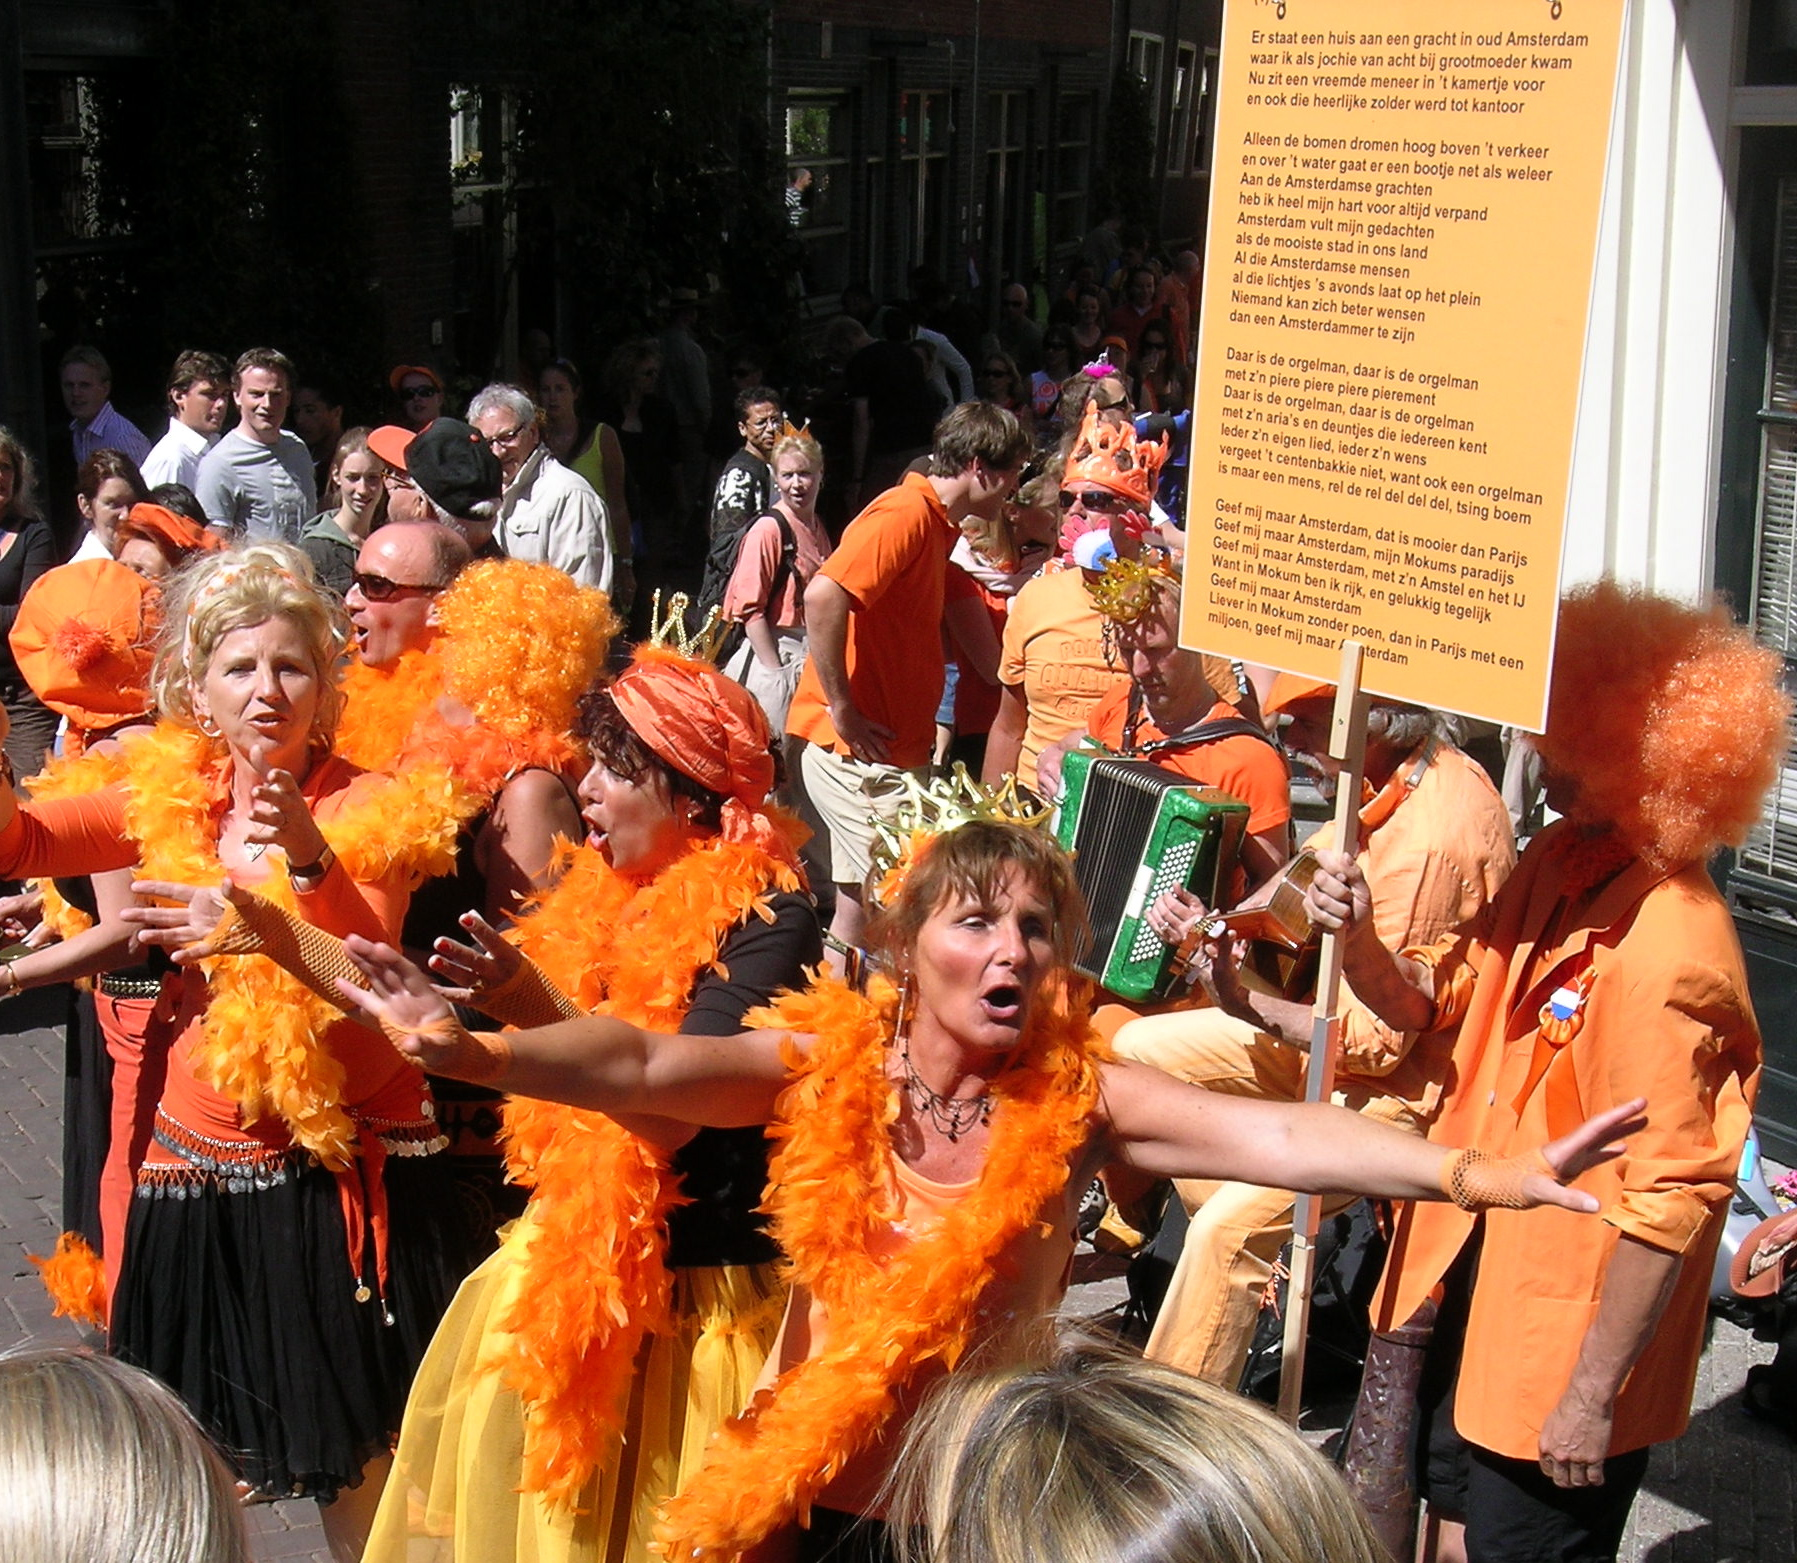 The orange Afro is my favorite expression of Dutch pride.